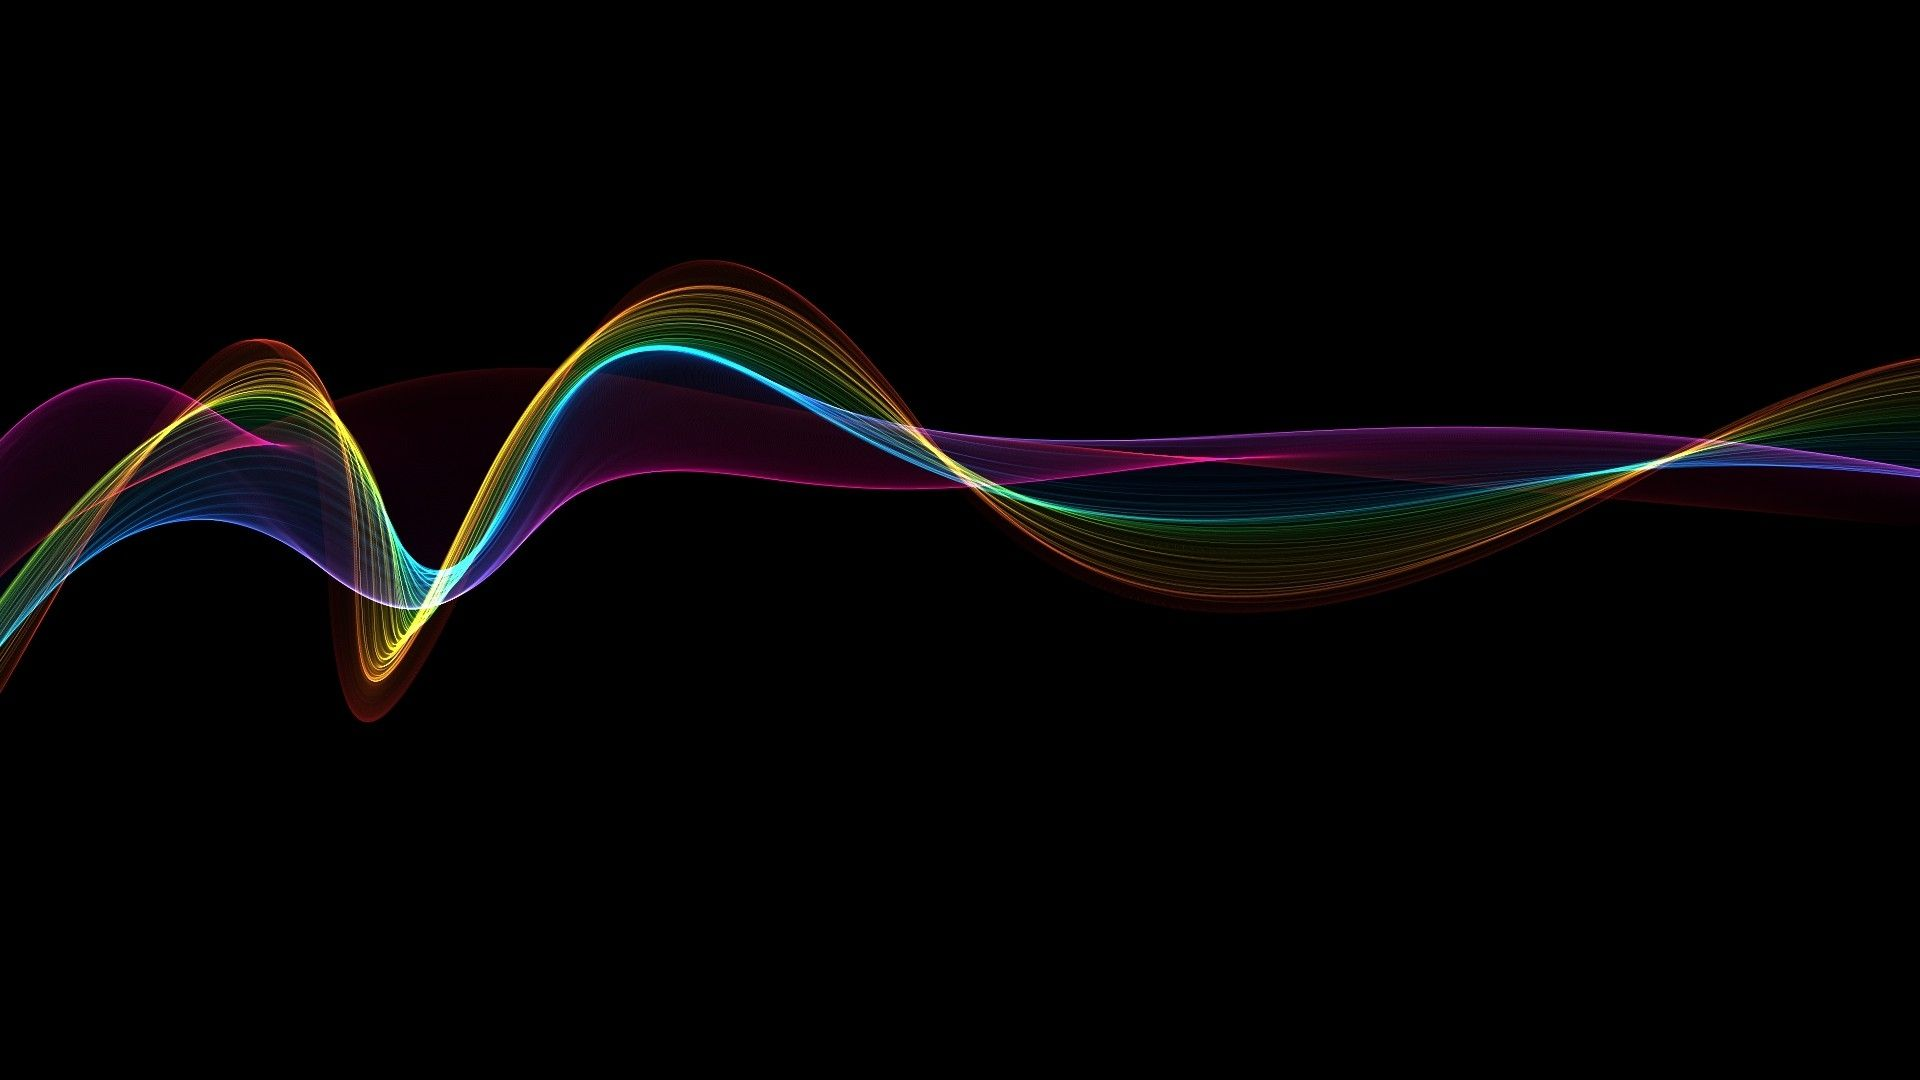 wavy, background, colorful - http://www.wallpapers4u.org/wavy-background-colorful/